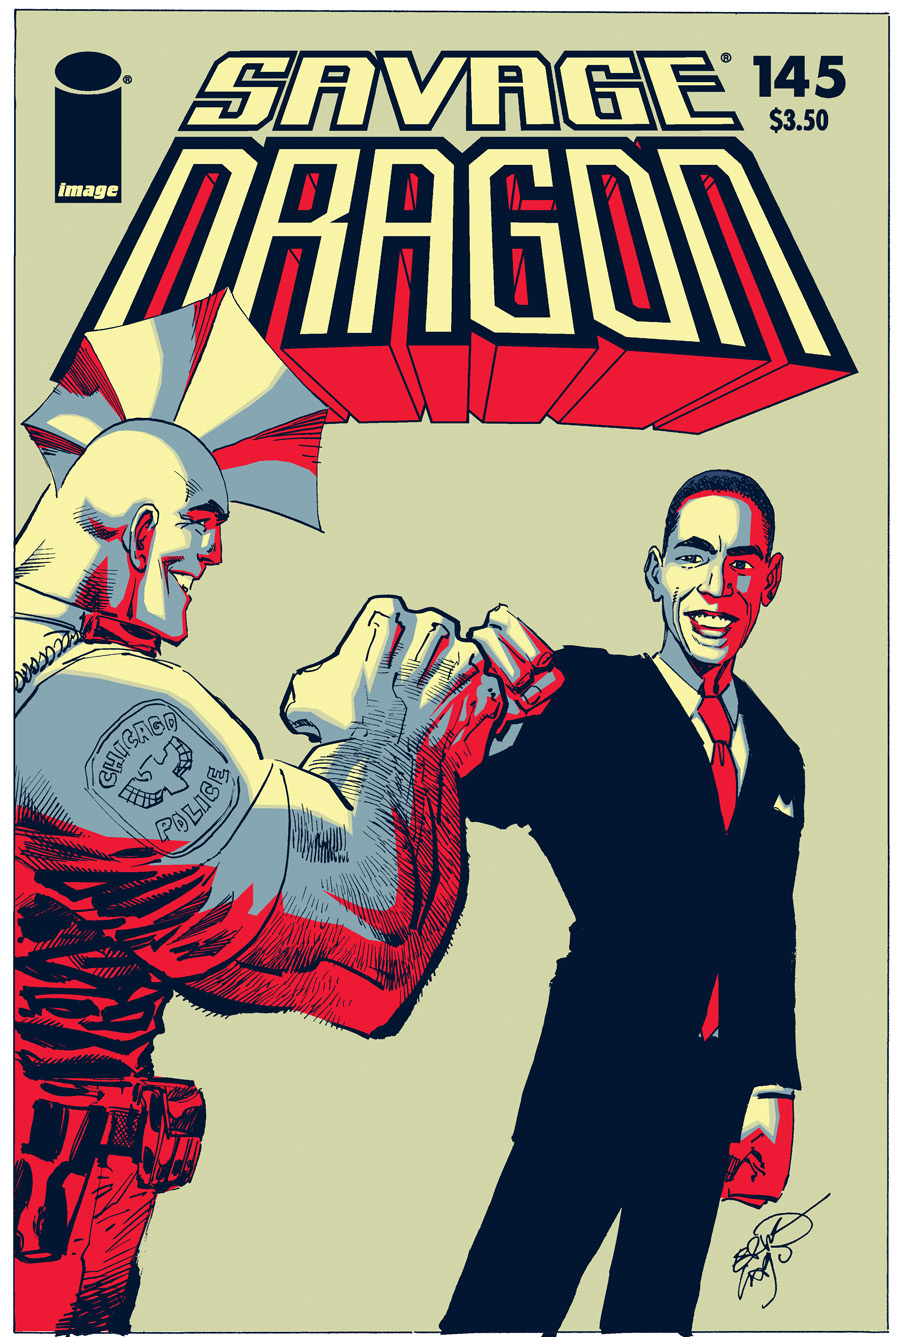 SD145altCOVcol USAToday's Reveals Savage Dragon #145's All-New Obama Cover